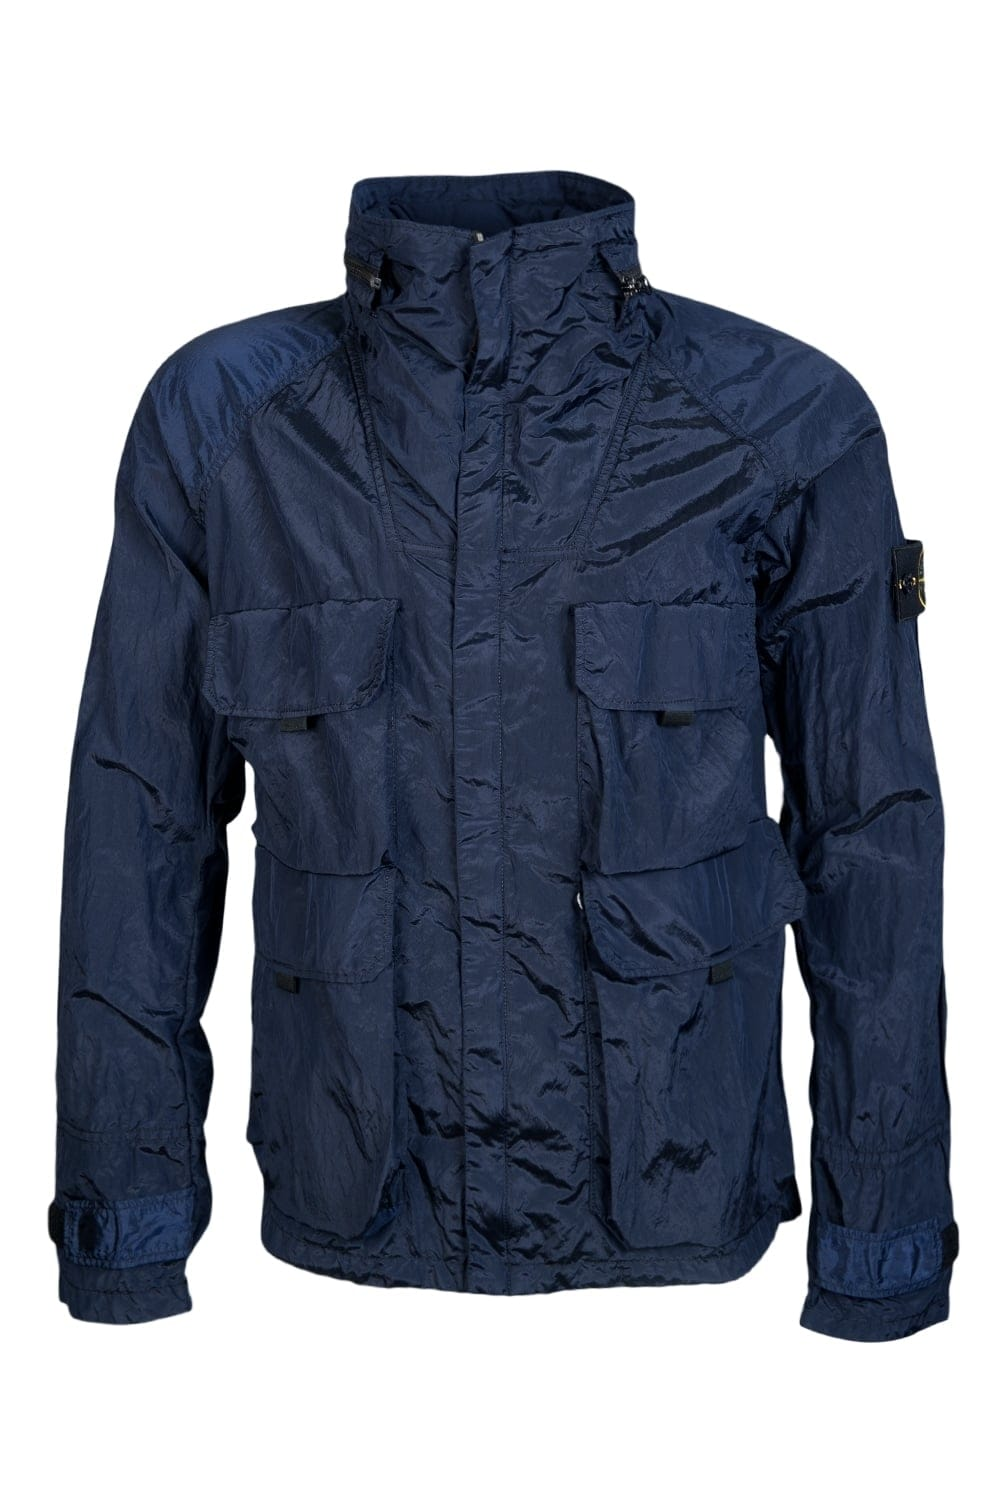 stone island jacket 641544347 clothing from sage clothing uk. Black Bedroom Furniture Sets. Home Design Ideas